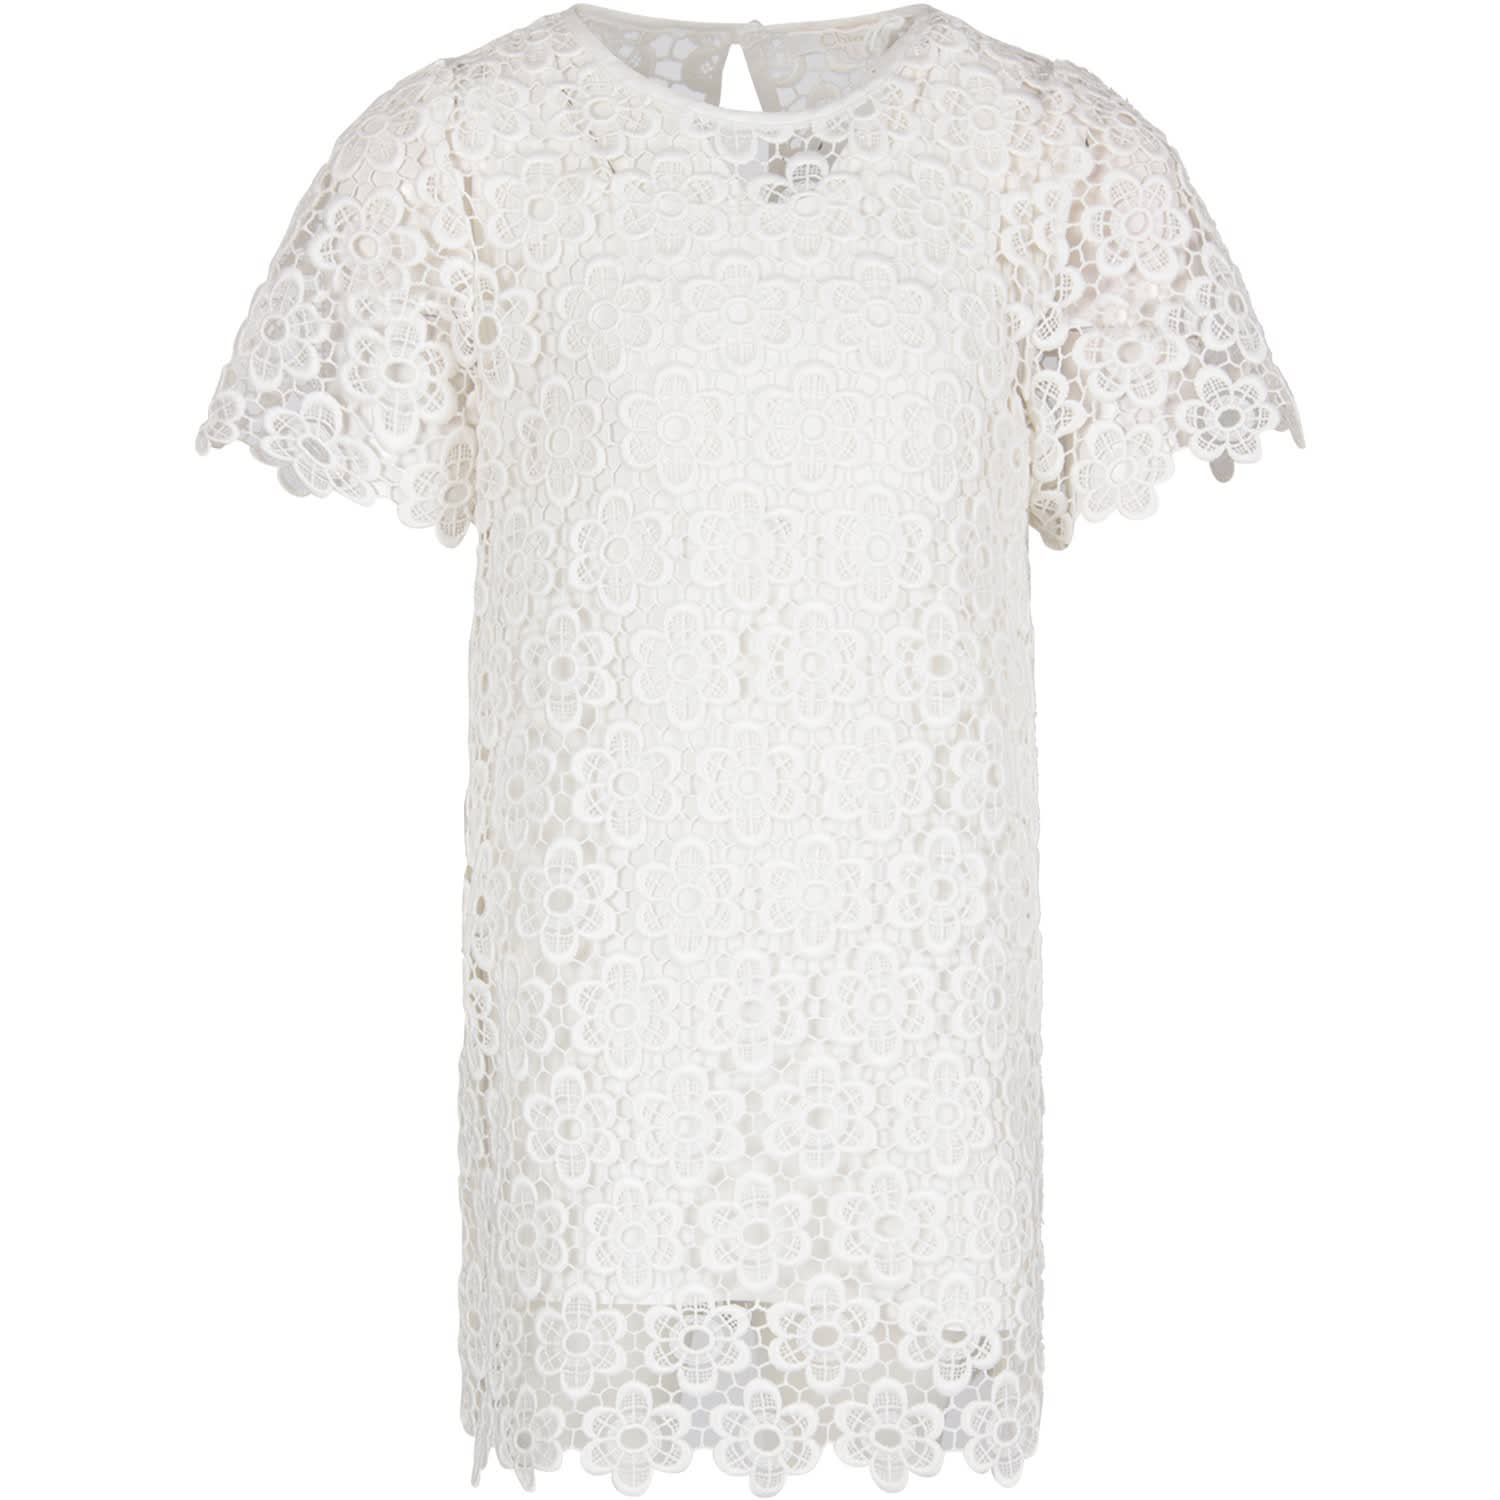 Buy Chloé White Girl Dress With Flowers online, shop Chloé with free shipping